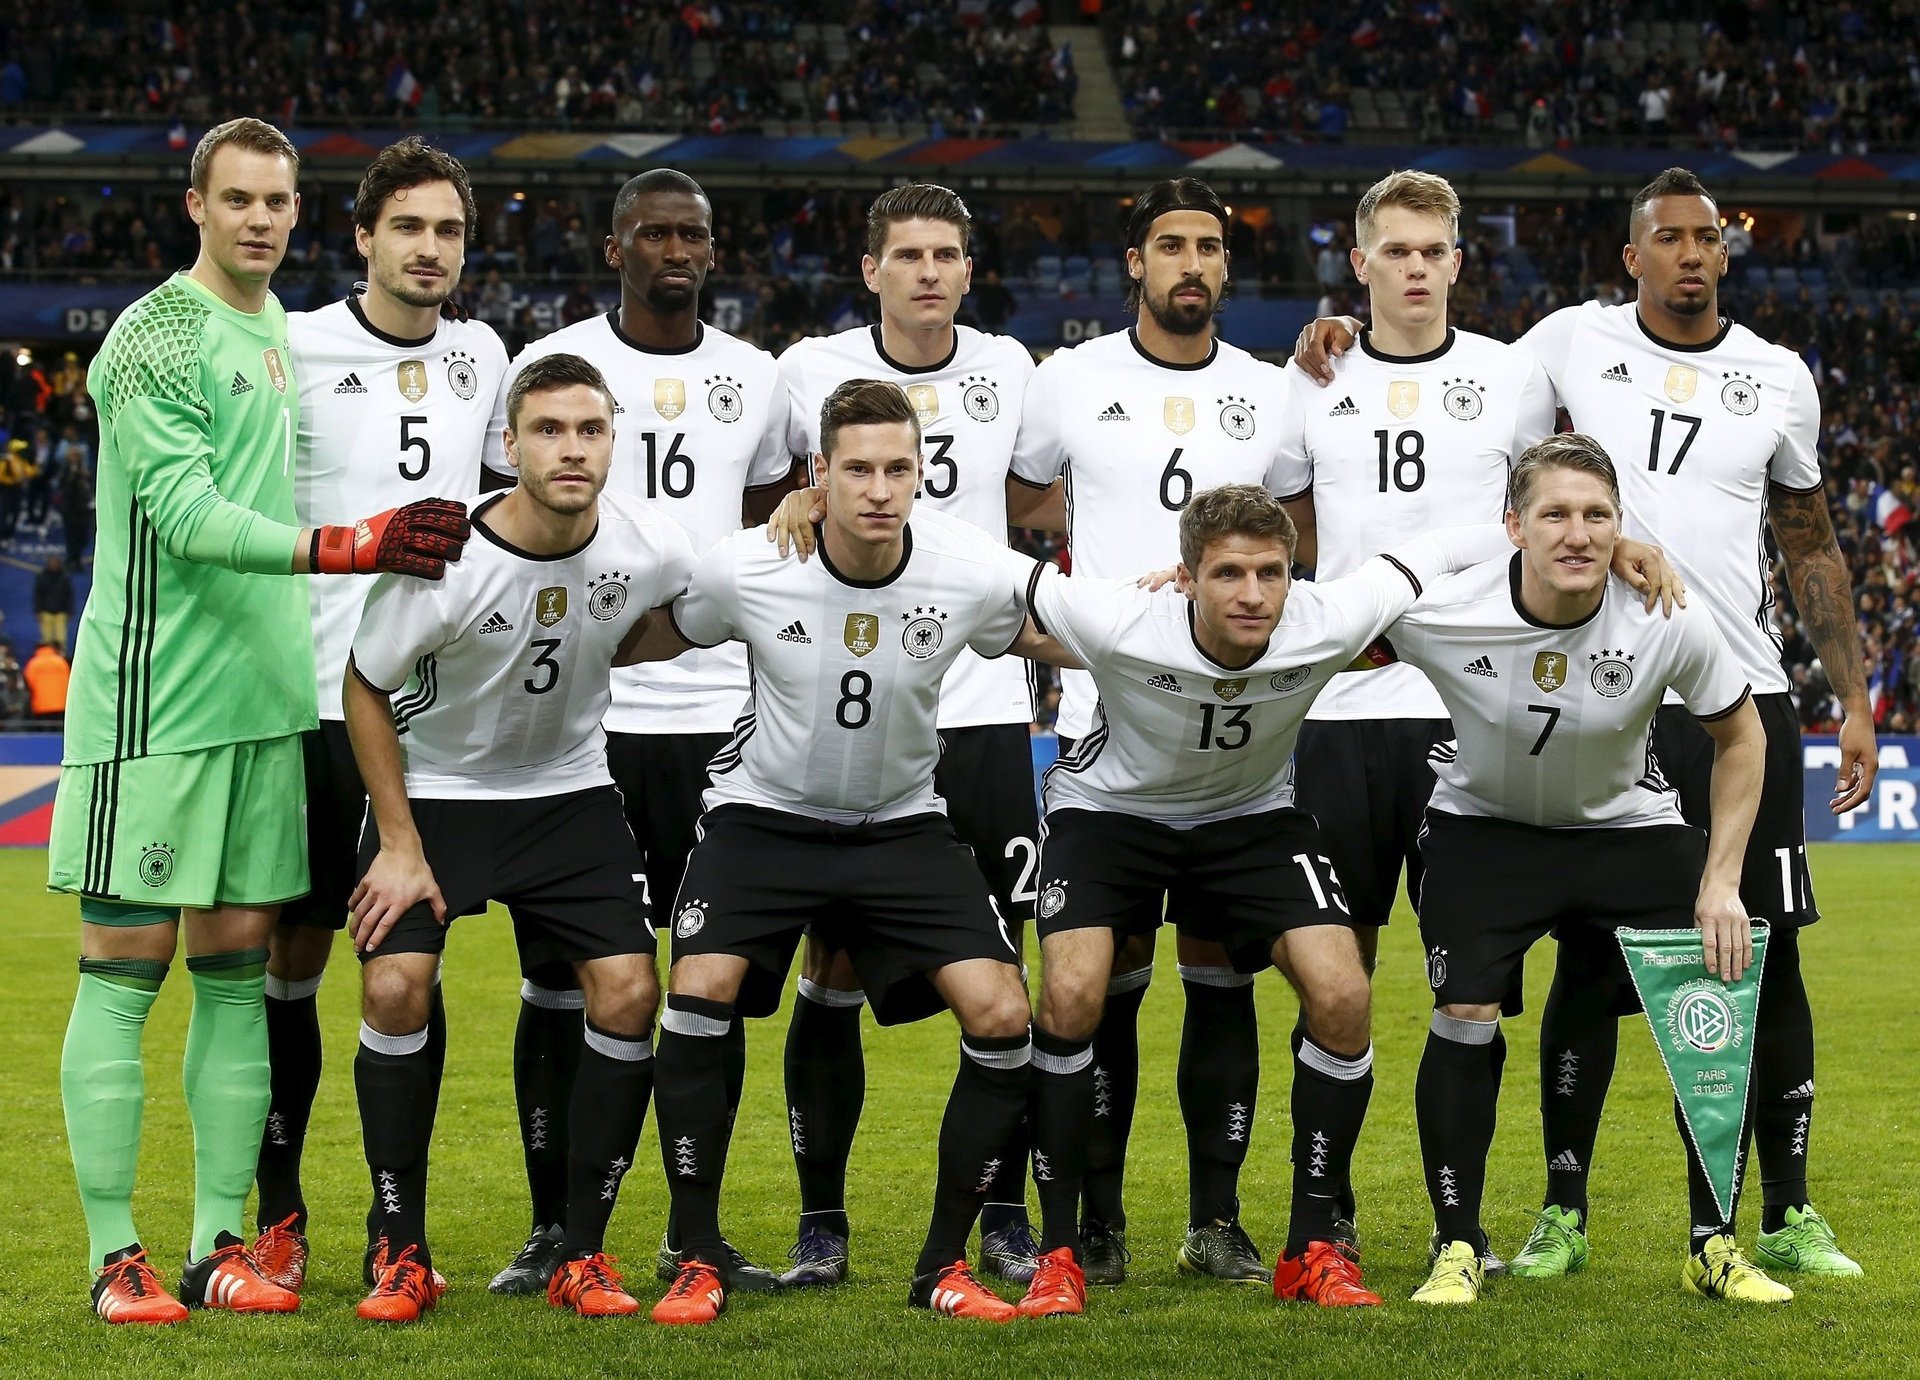 Germany-2016-adidas-home-kit-white-black-black-line-up.jpg